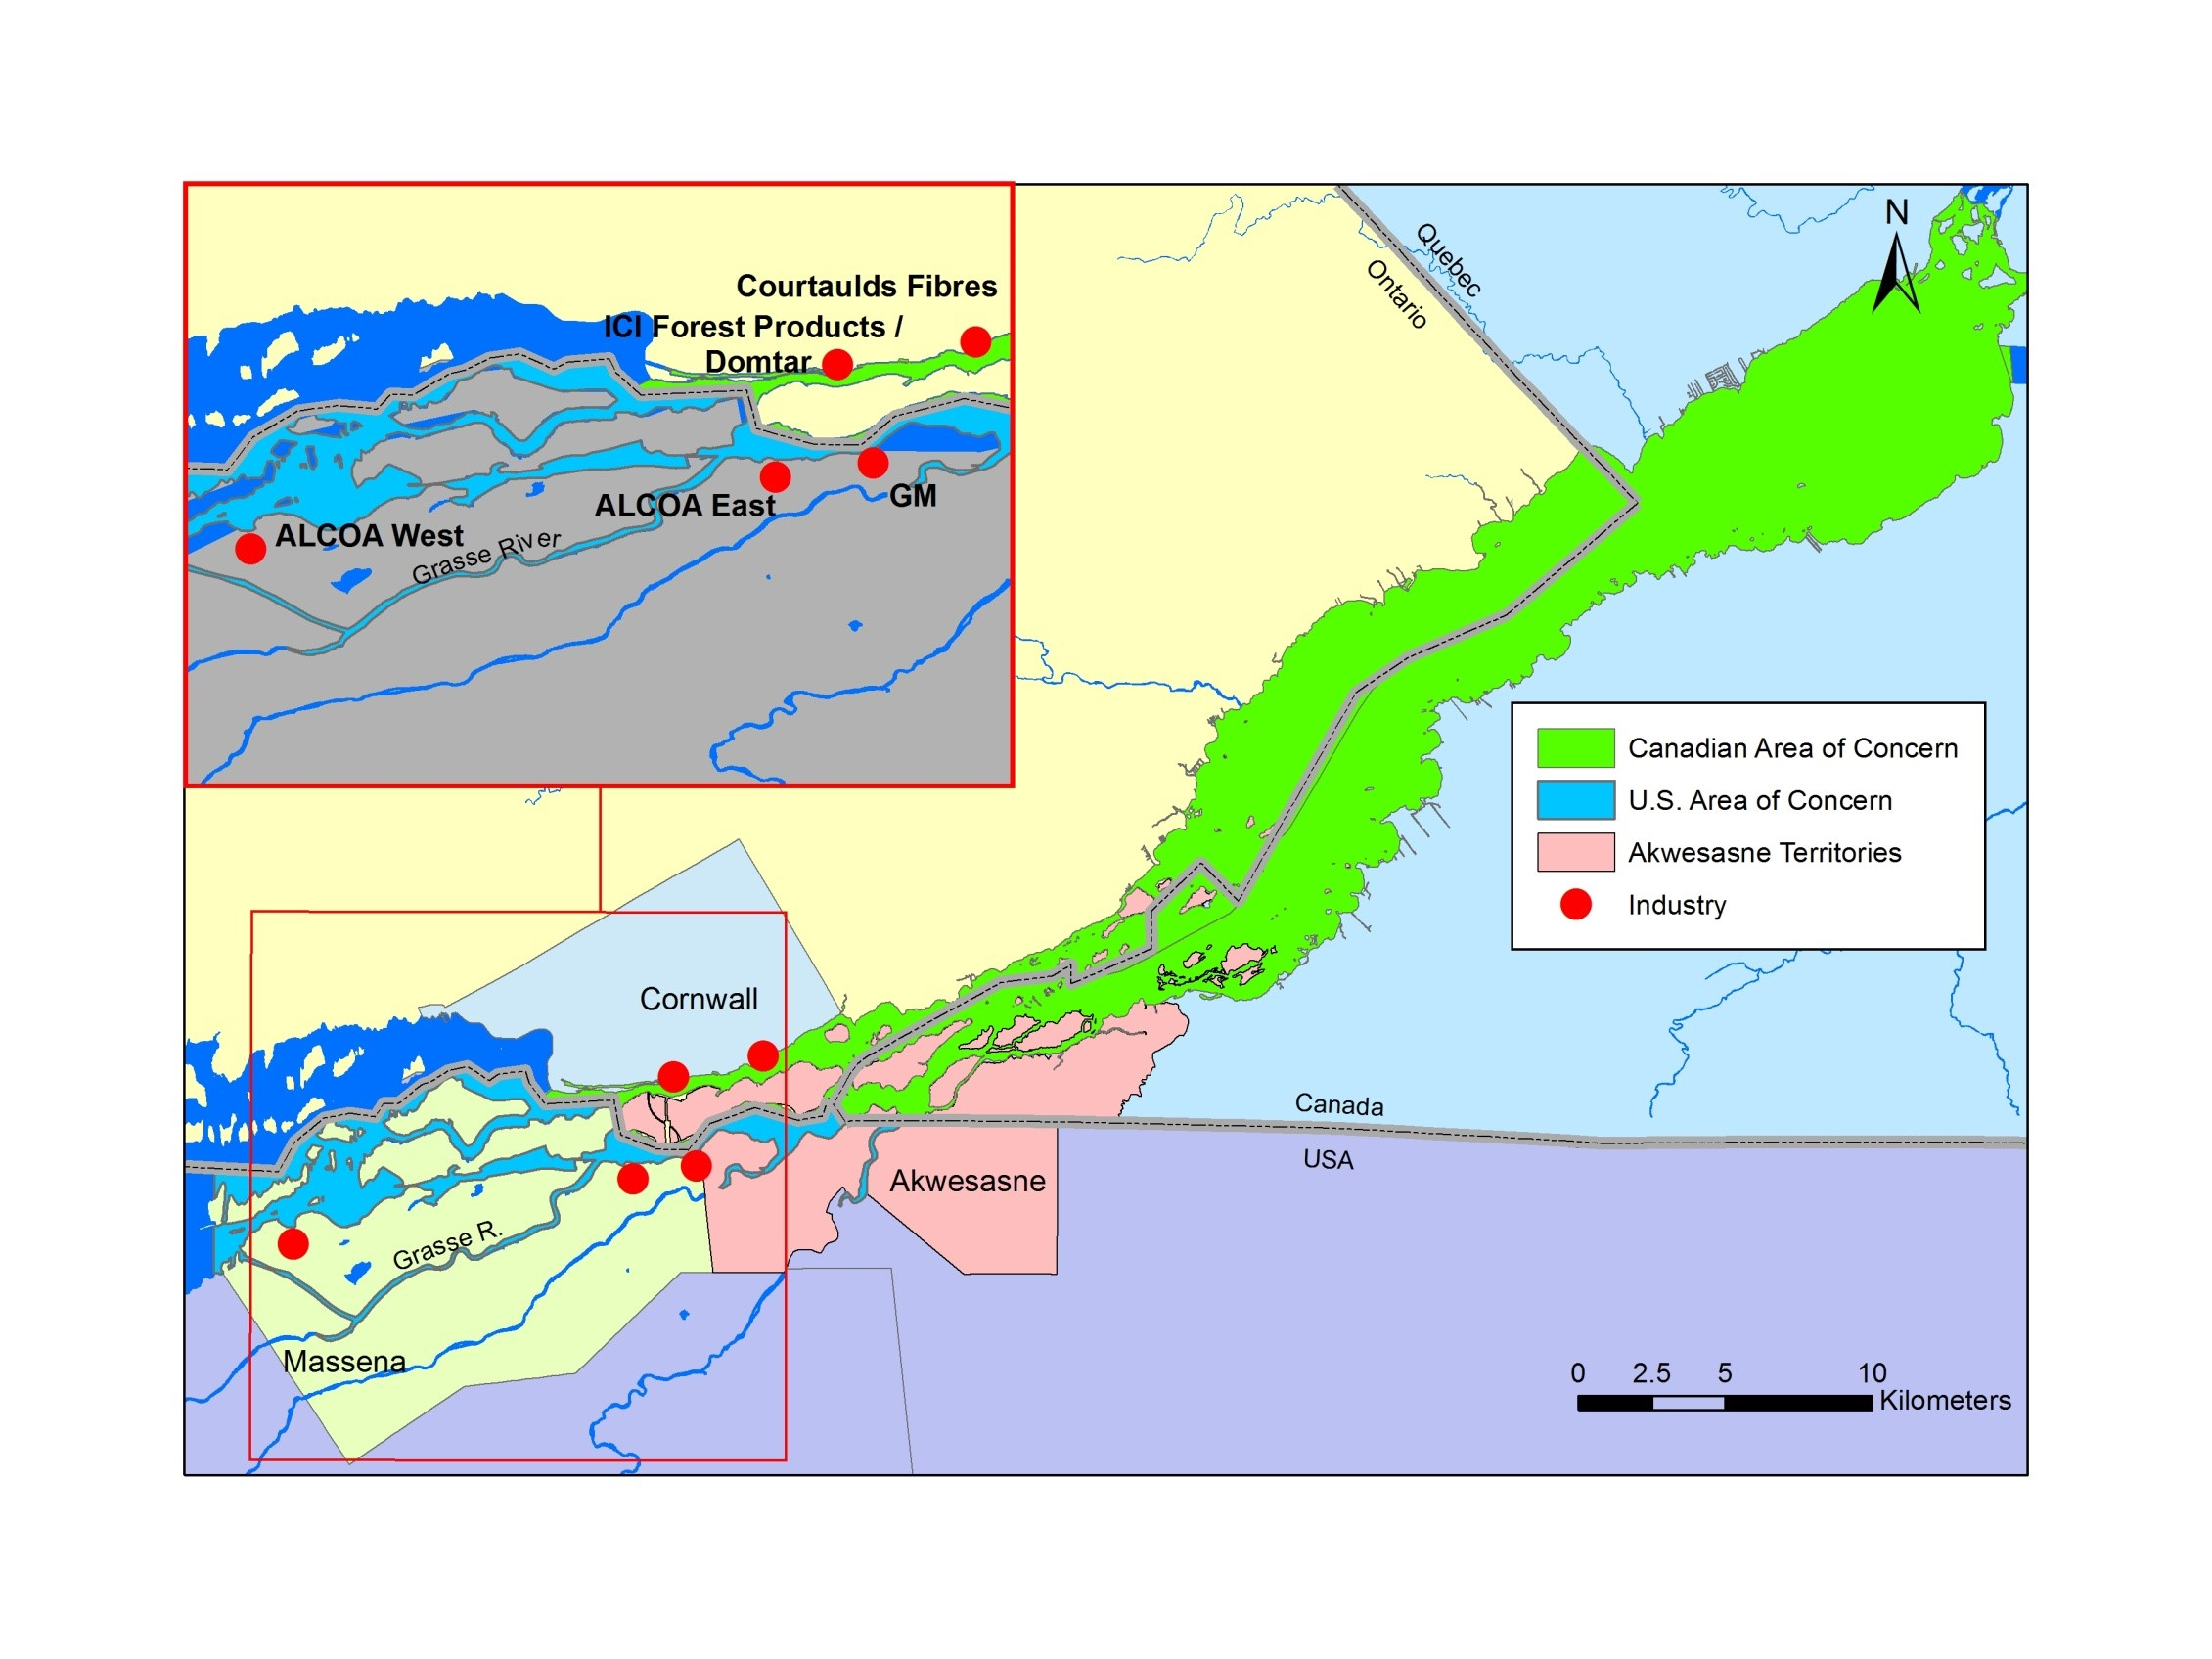 Canadian St. Lawrence River Area of Concern